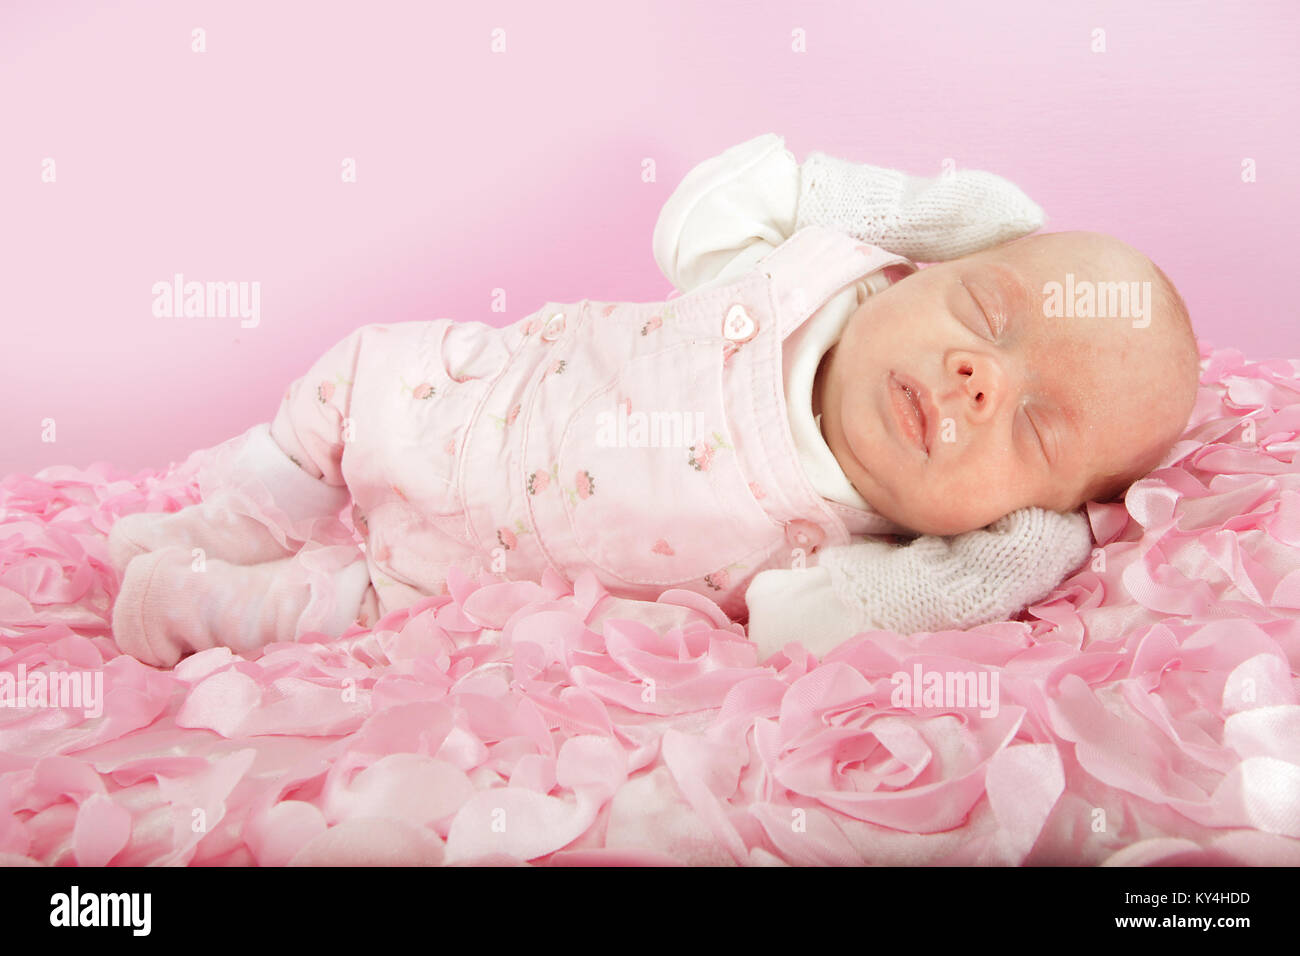 10 week old baby girl, small premature baby Stock Photo